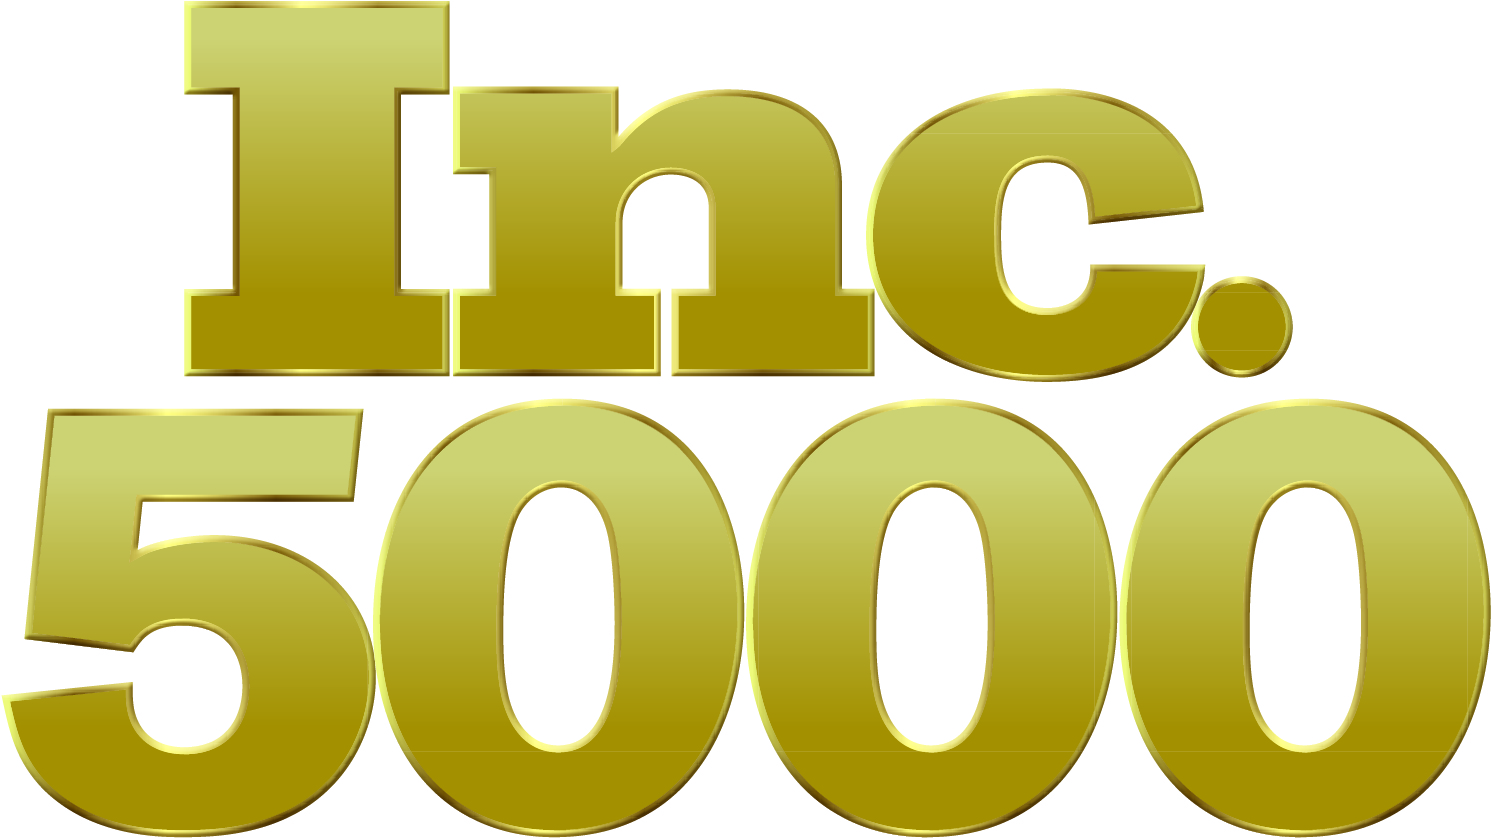 We Did It! We Won the Inc. 5000 Award Again